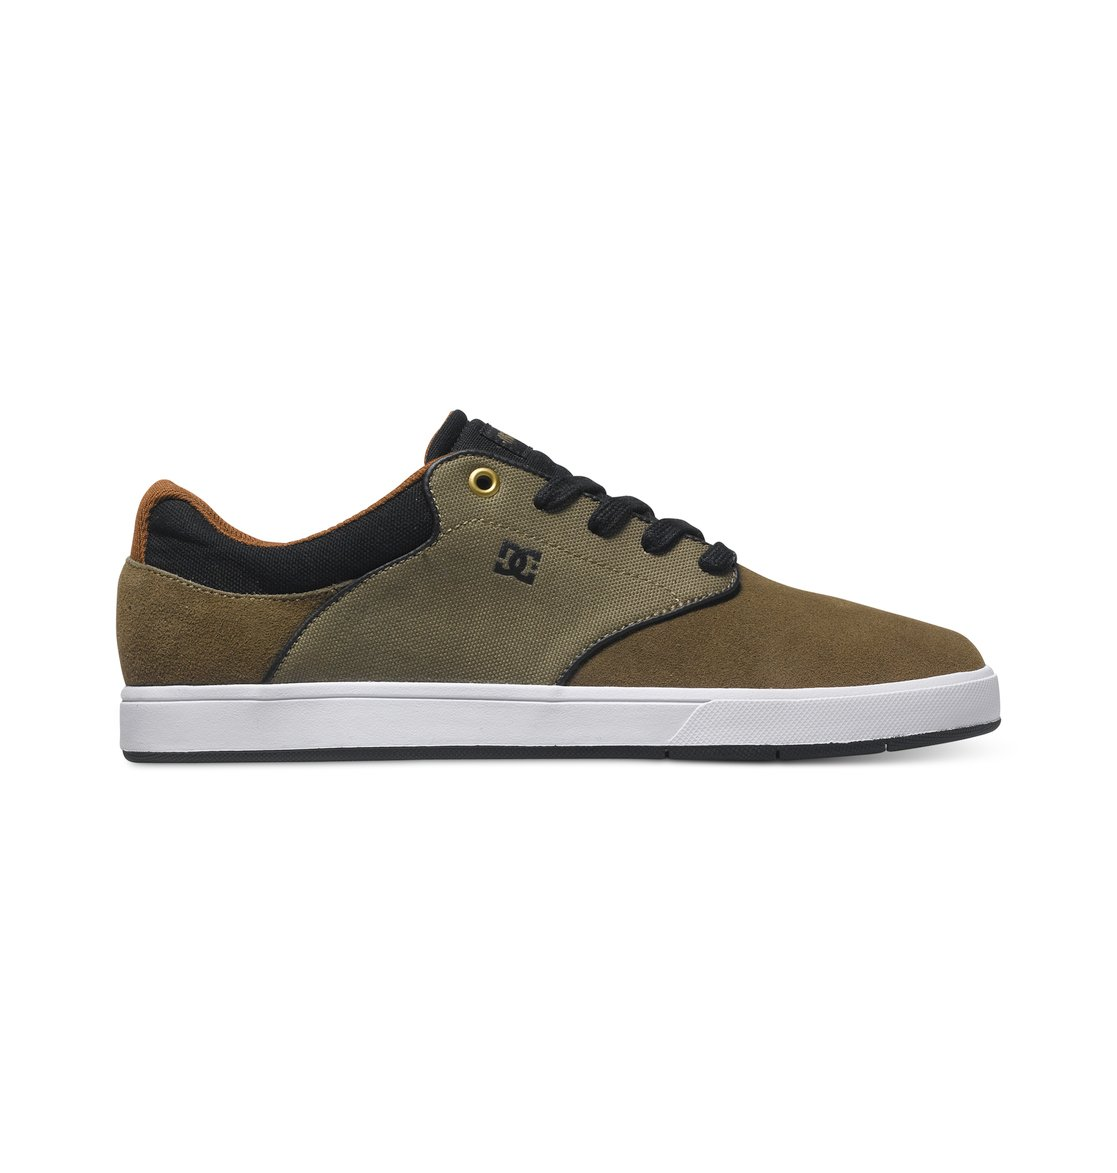 Mikey Taylor S от DC Shoes